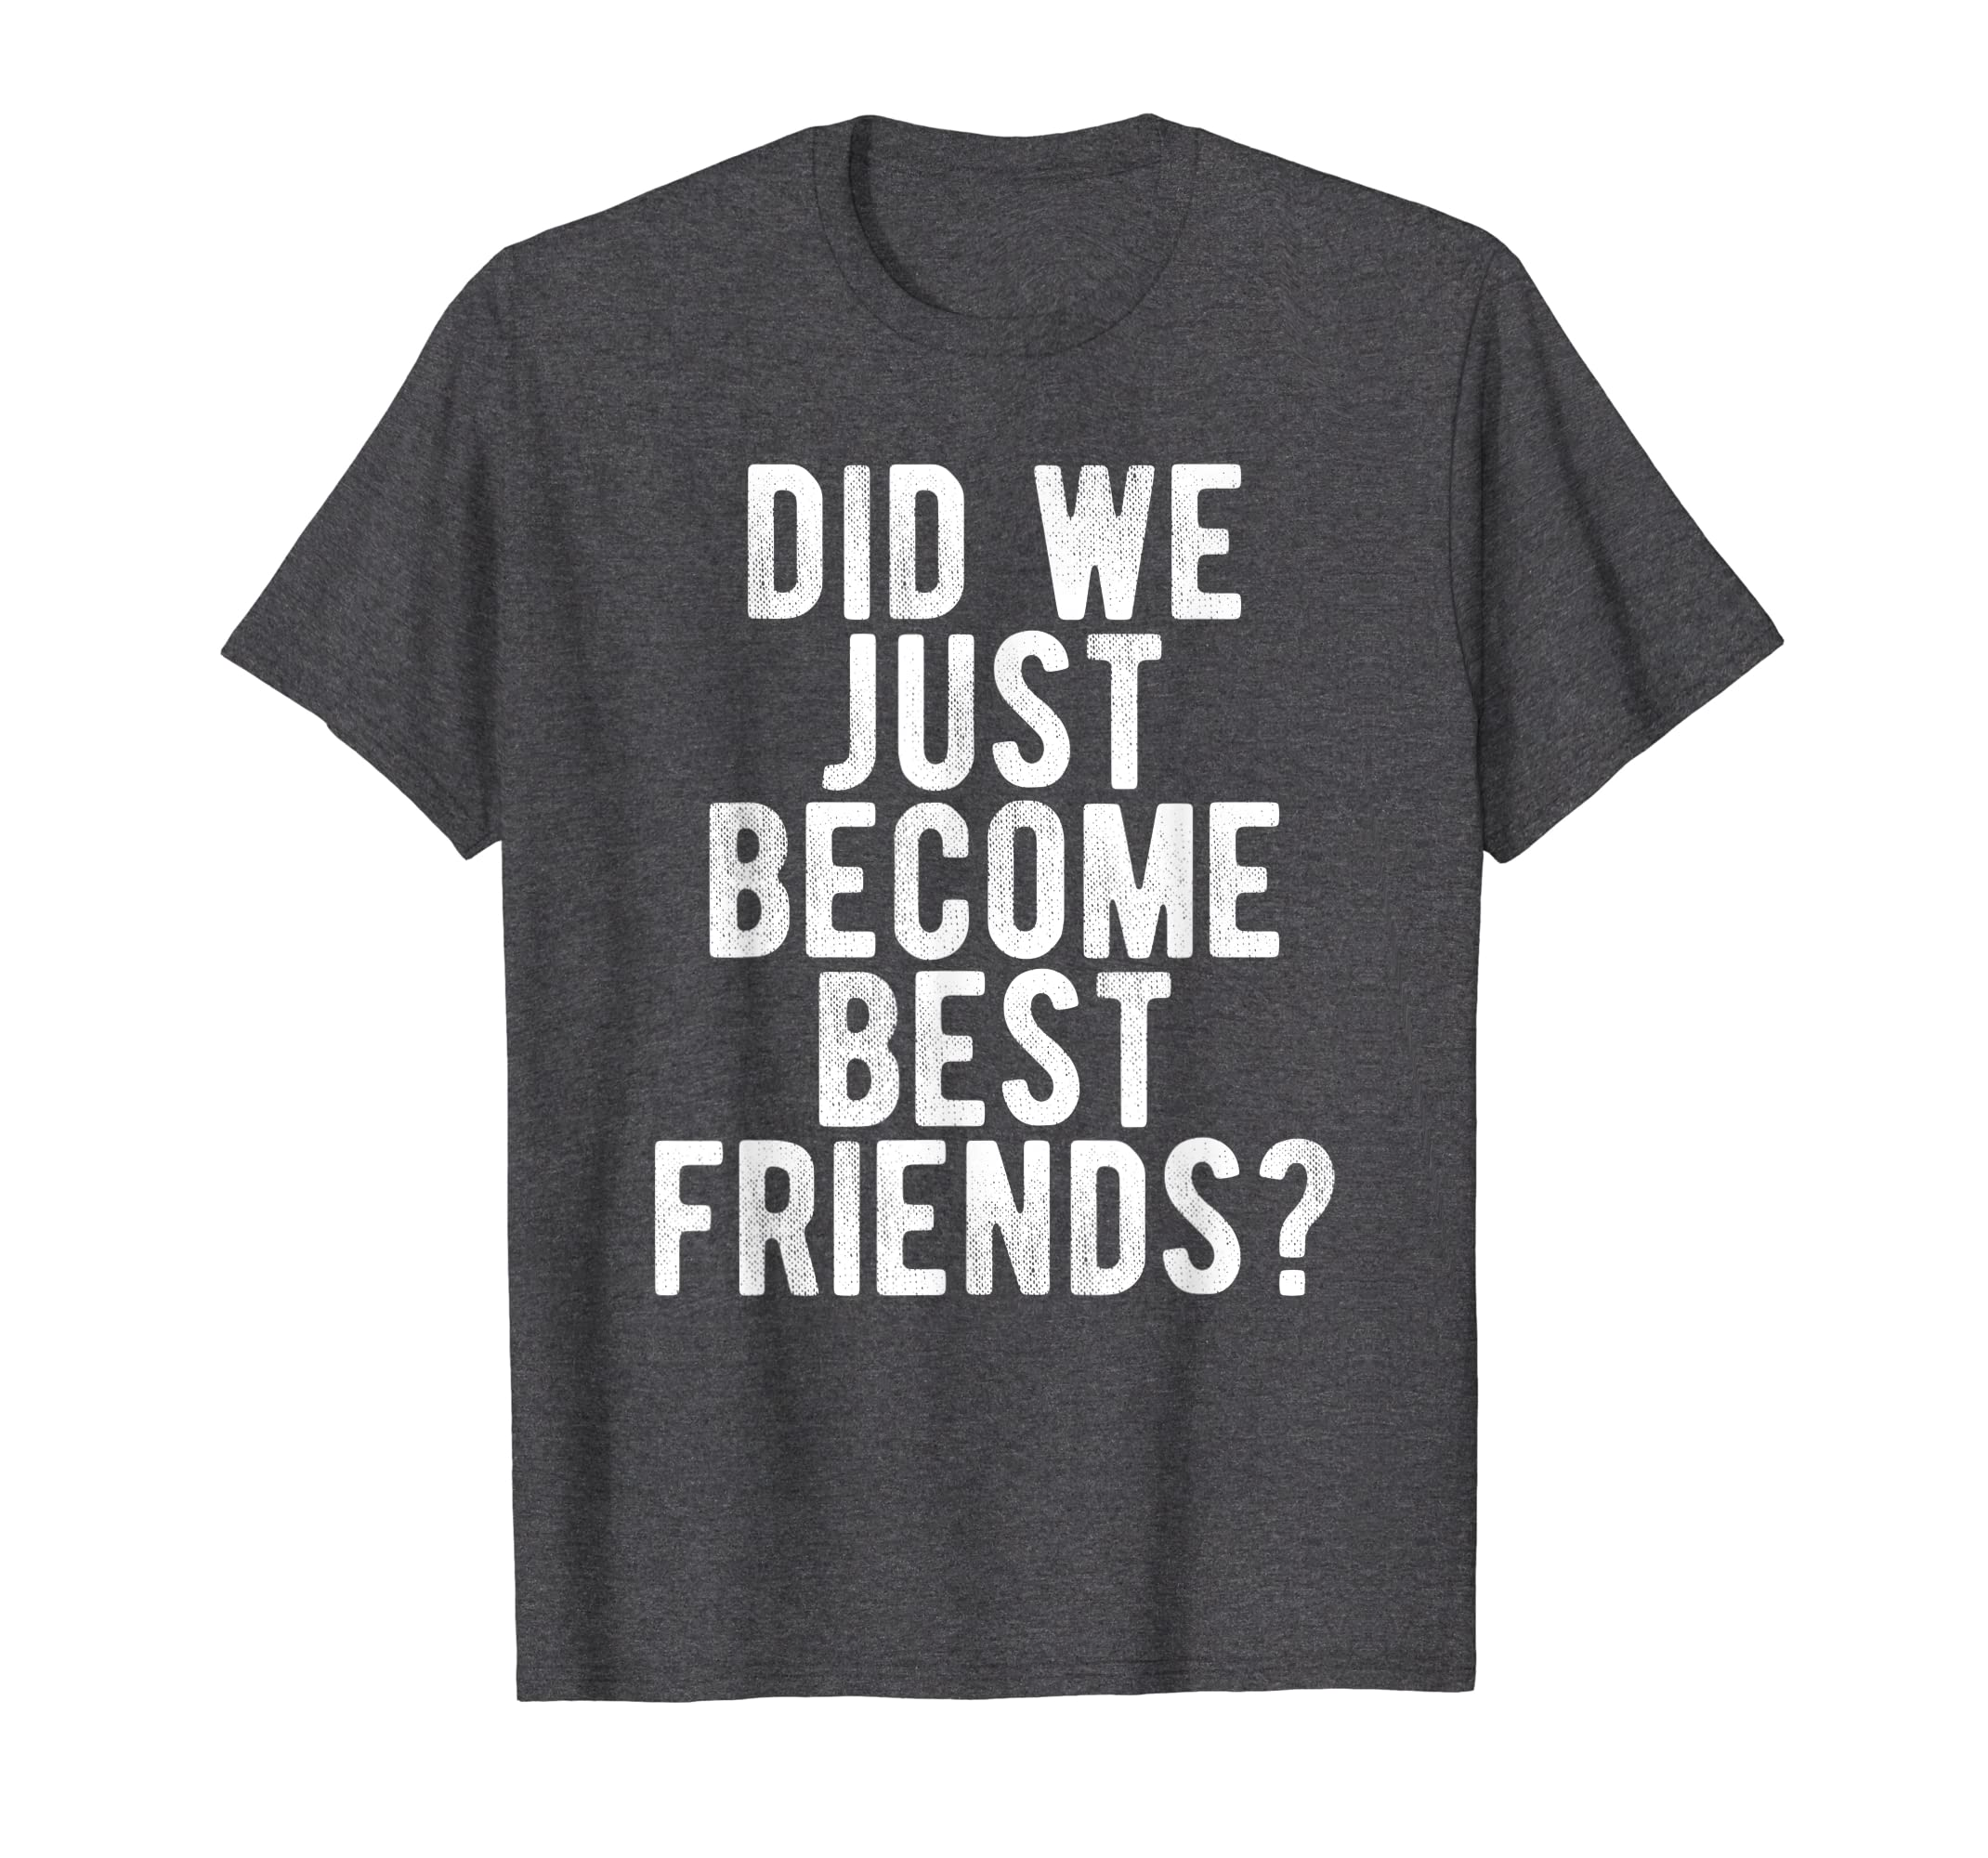 f9e214d18 Amazon.com  Did We Just Become Best Friends T Shirt Funny Novelty ...